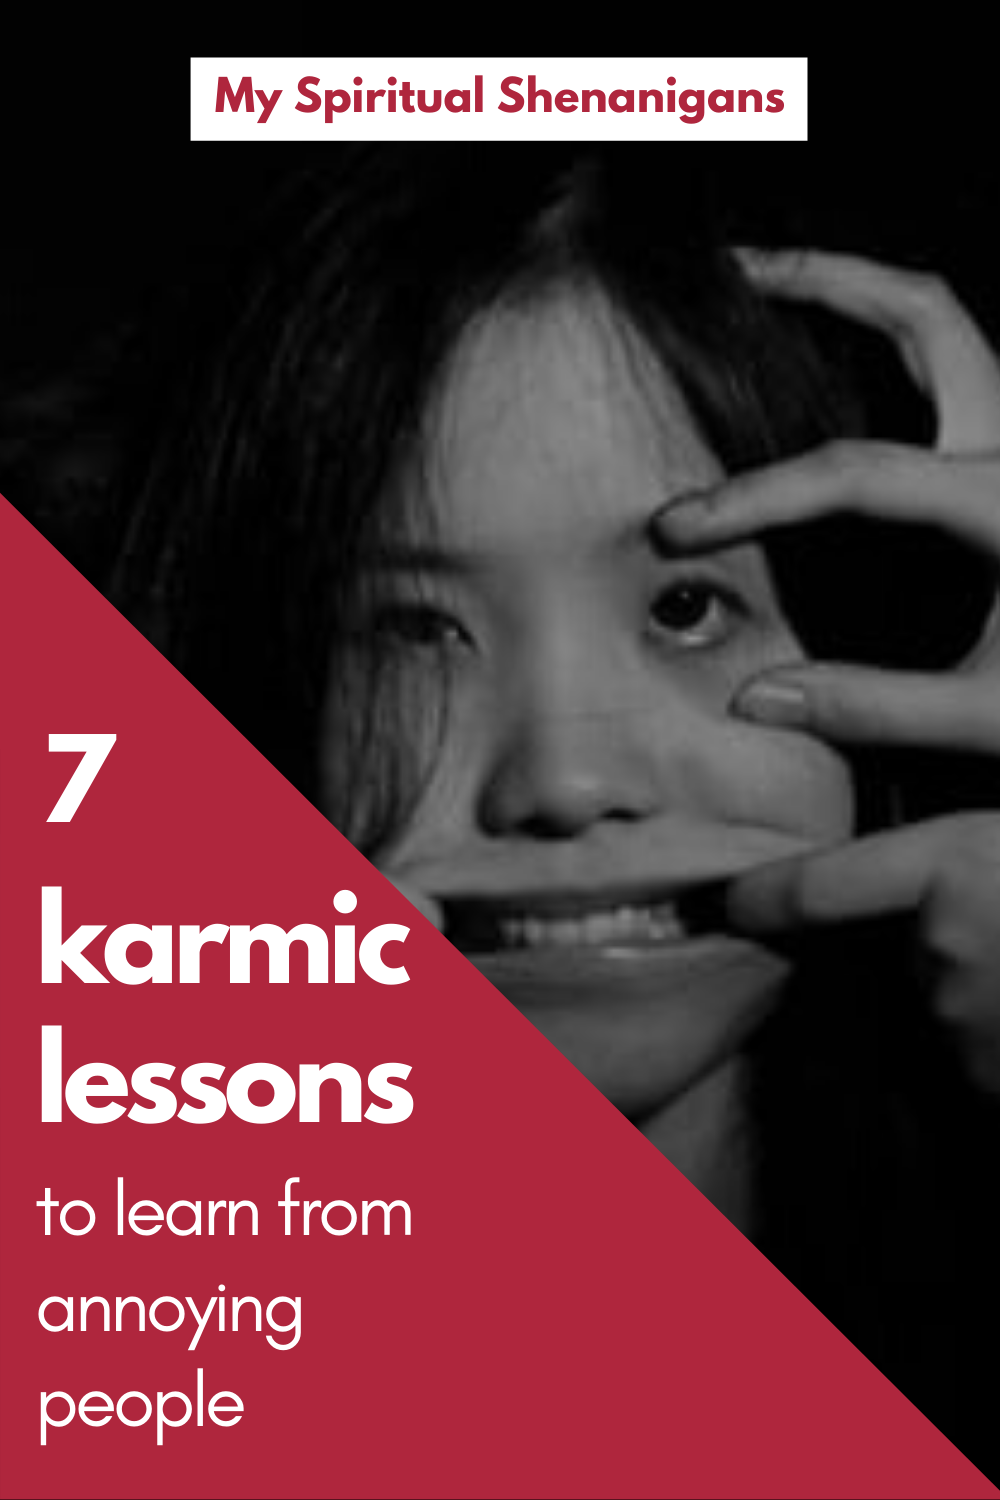 7 Karmic Lessons To Learn From People That Annoy You Spirituality Soul Contract Annoyed